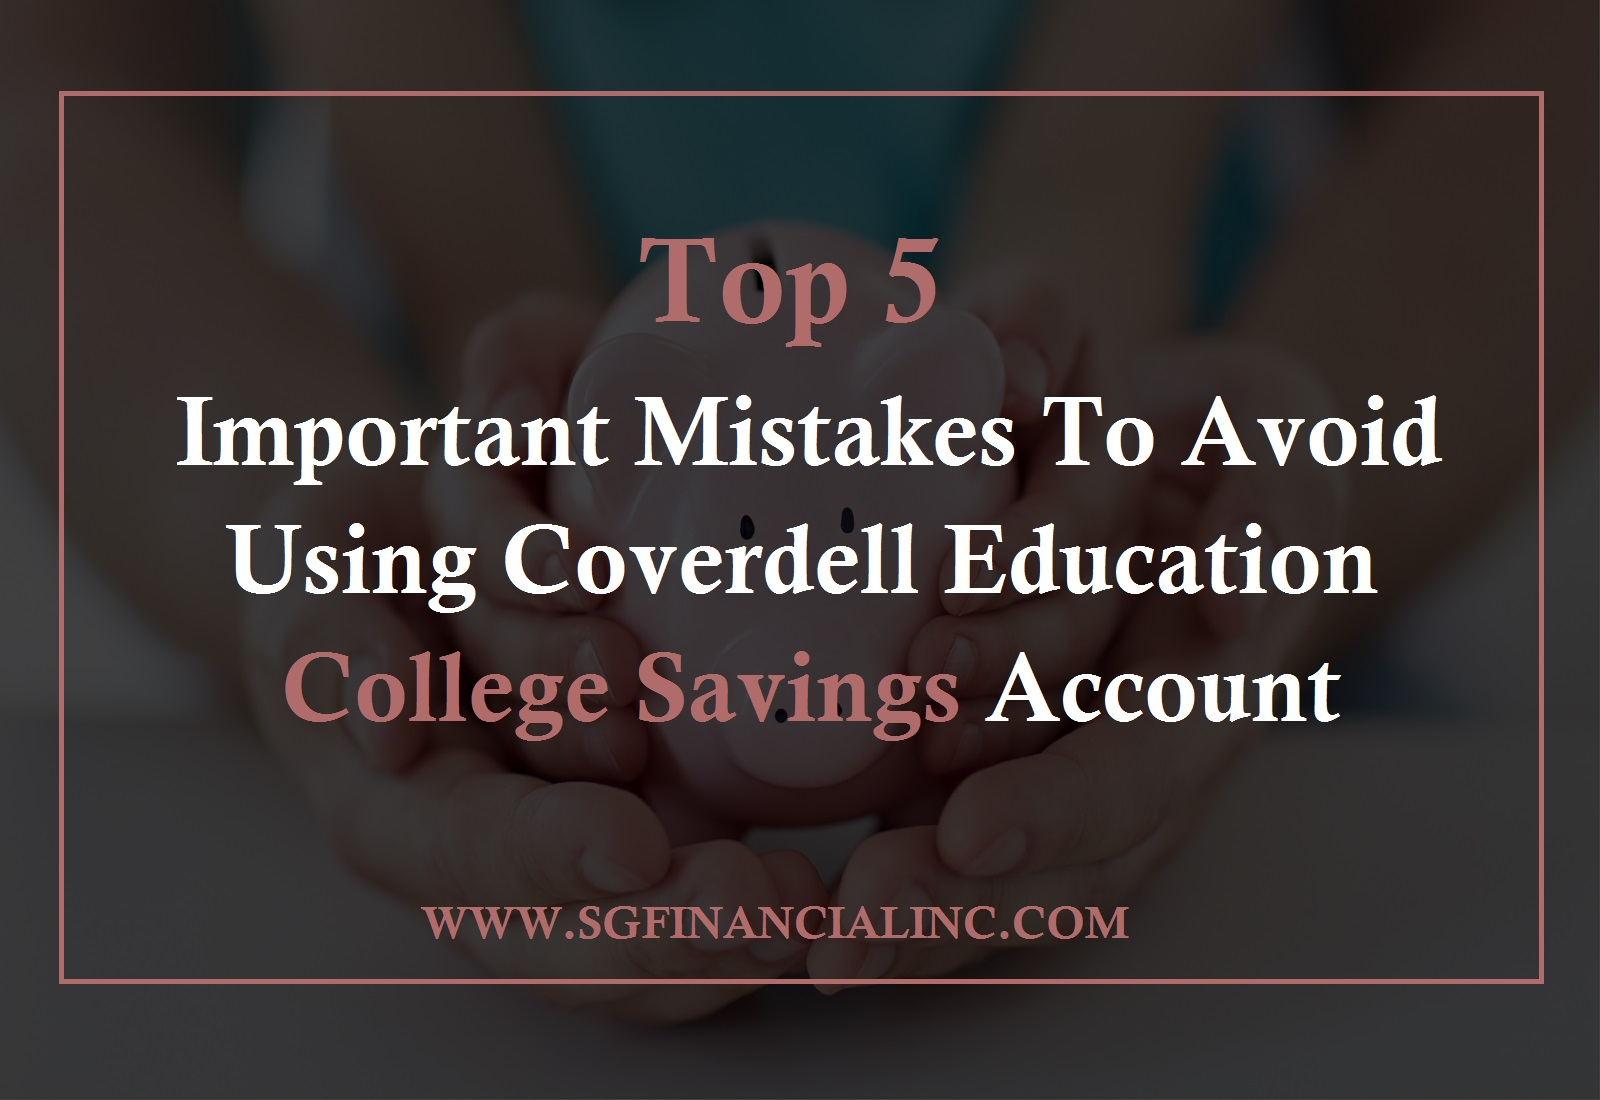 Top 5 Most Important Mistakes to Avoid using Coverdell Education College Savings Account